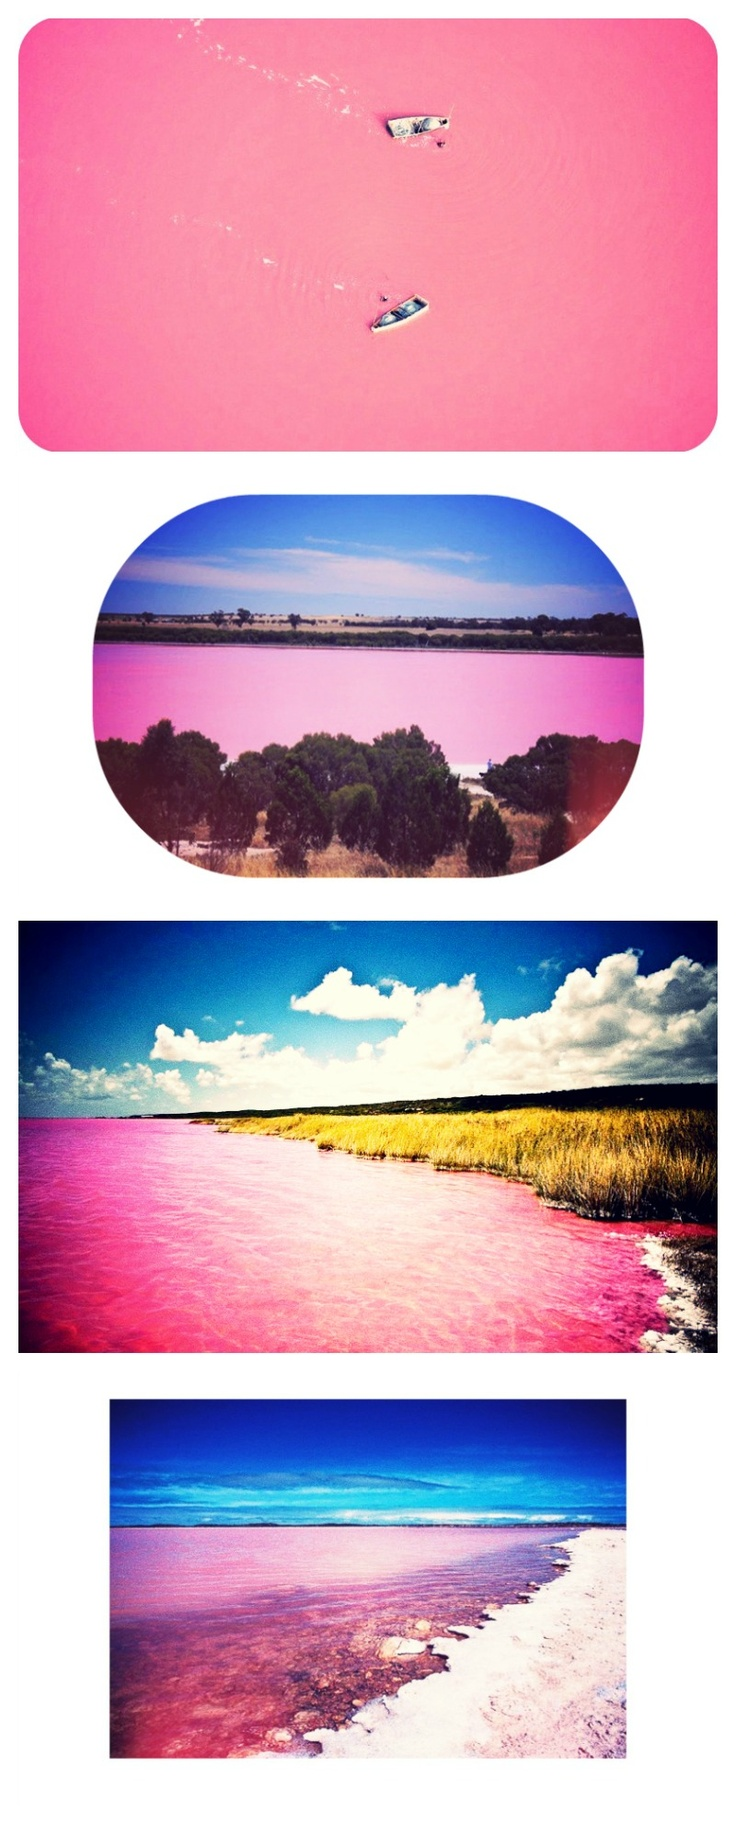 This is Lake Retba, or Lac Rose, as the French call it, located in Senegal.